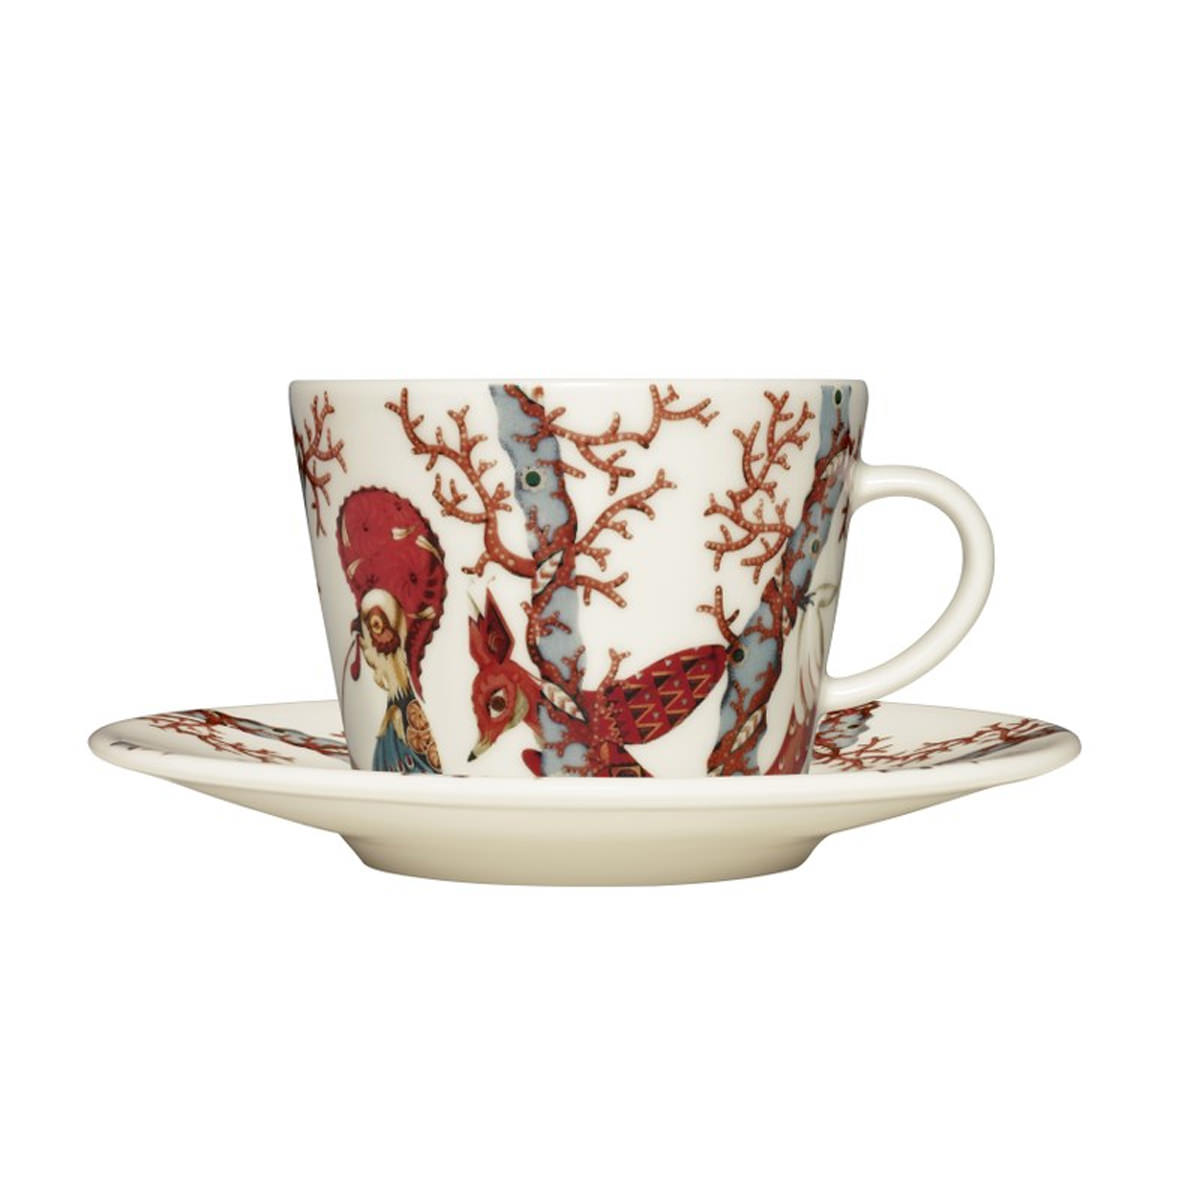 Iittala Tanssi Cup and Saucer